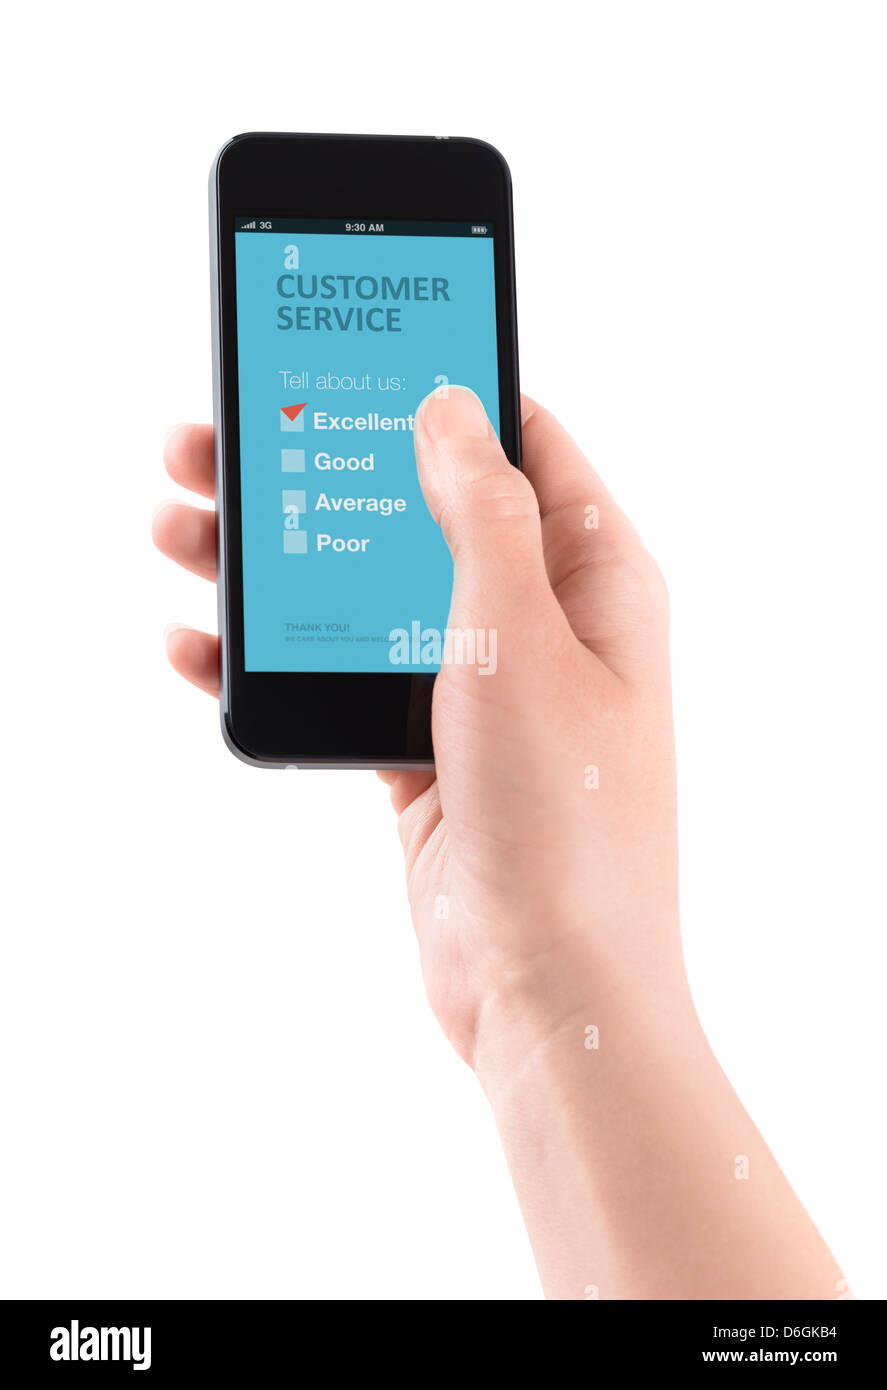 Female hand holding modern smartphone with customer service survey form on a screen. - Stock Image